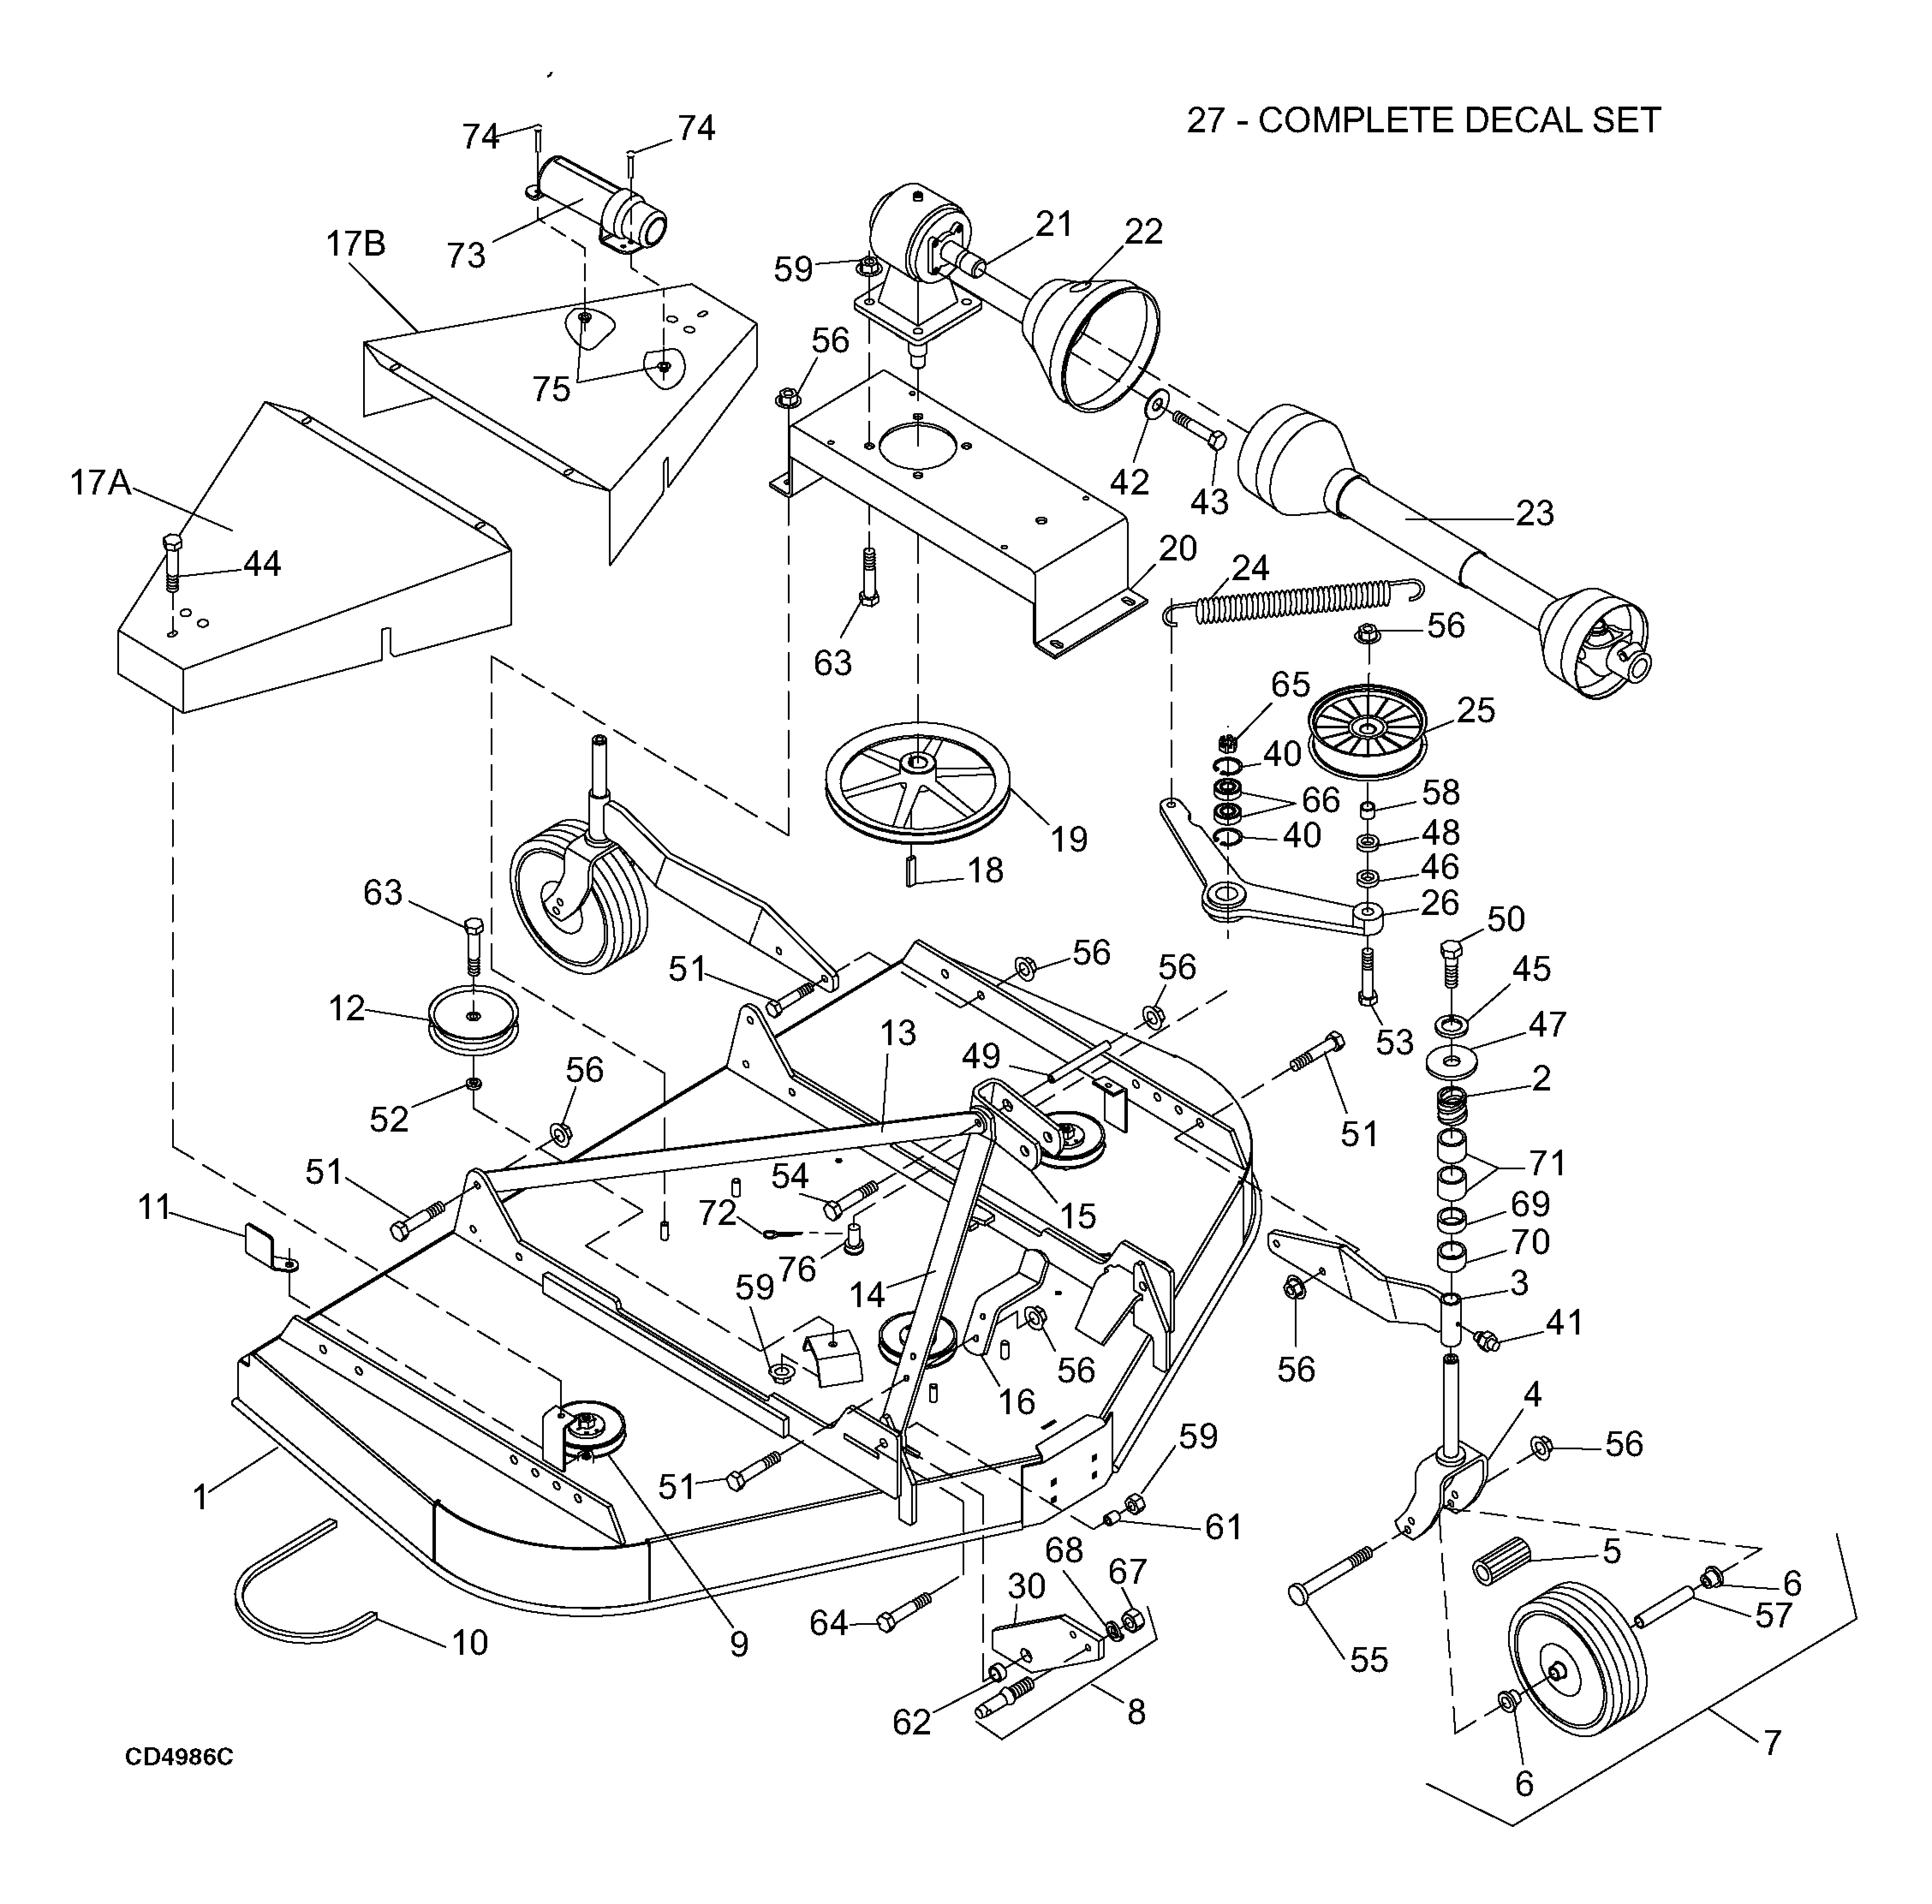 Woods Mower Parts Diagrams Woods Rd8400 2 Rearmount Finish Mower Main Frame Assembly Parts And